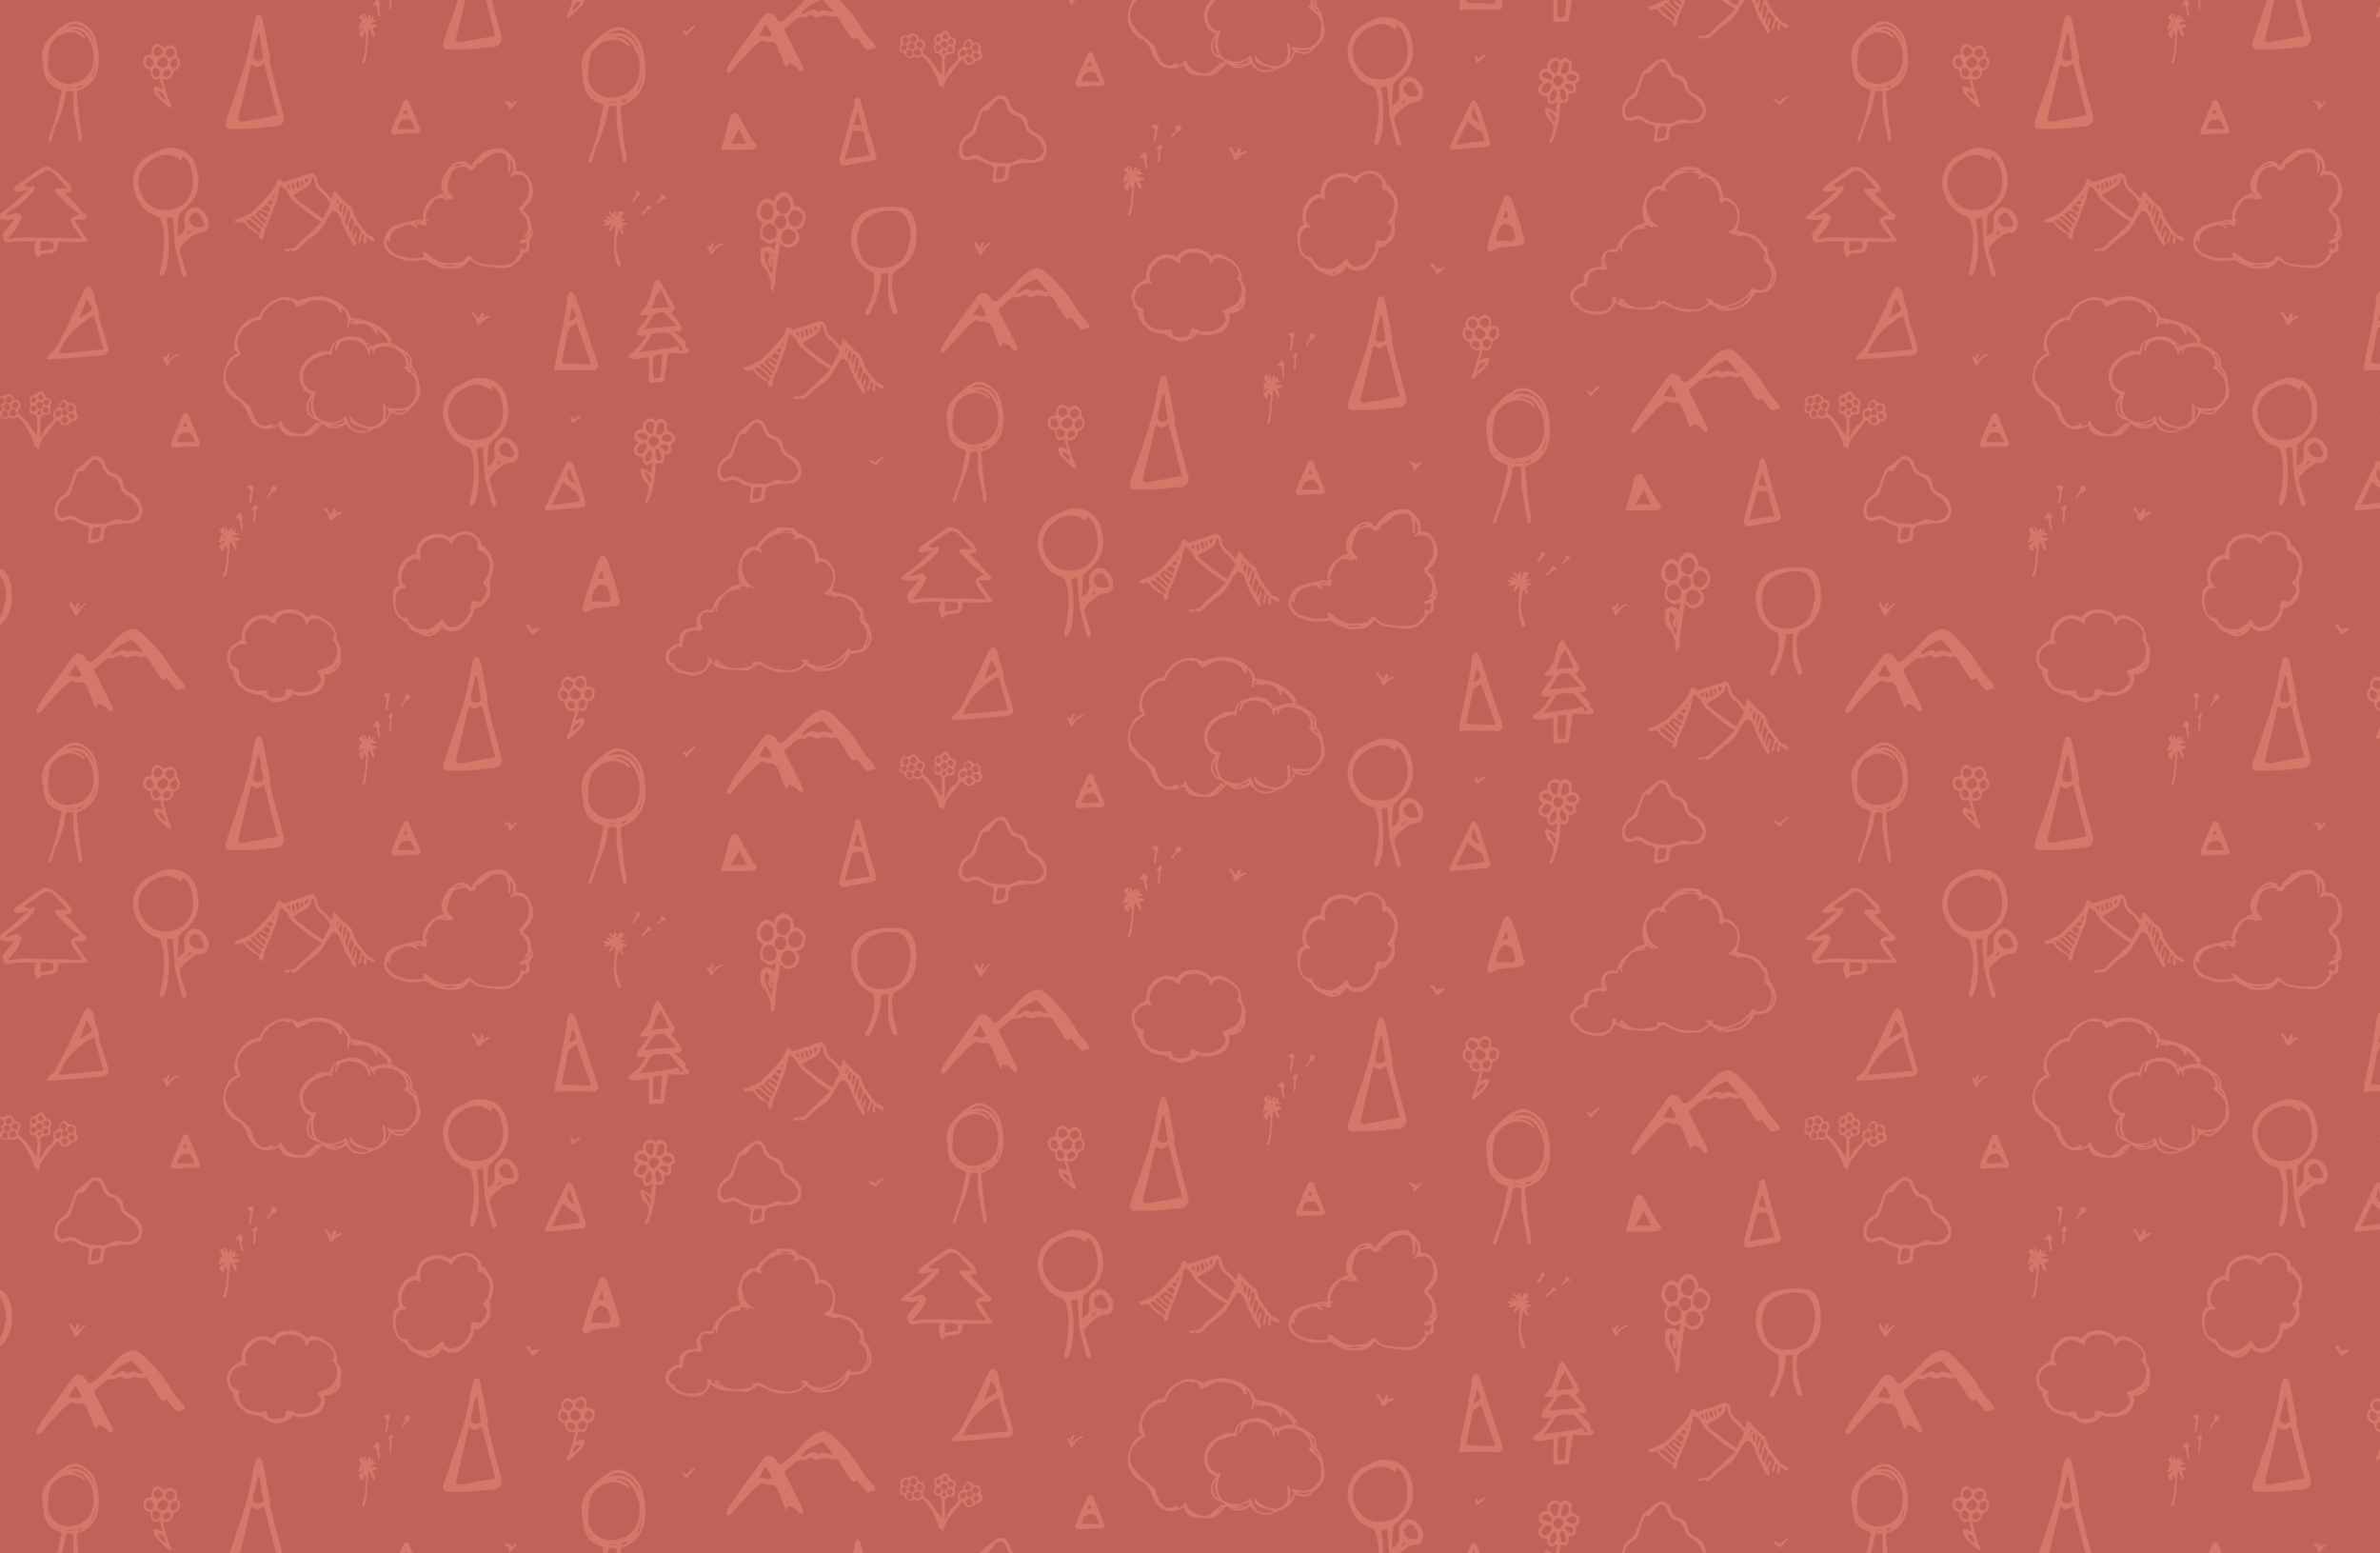 Patterns-06.png